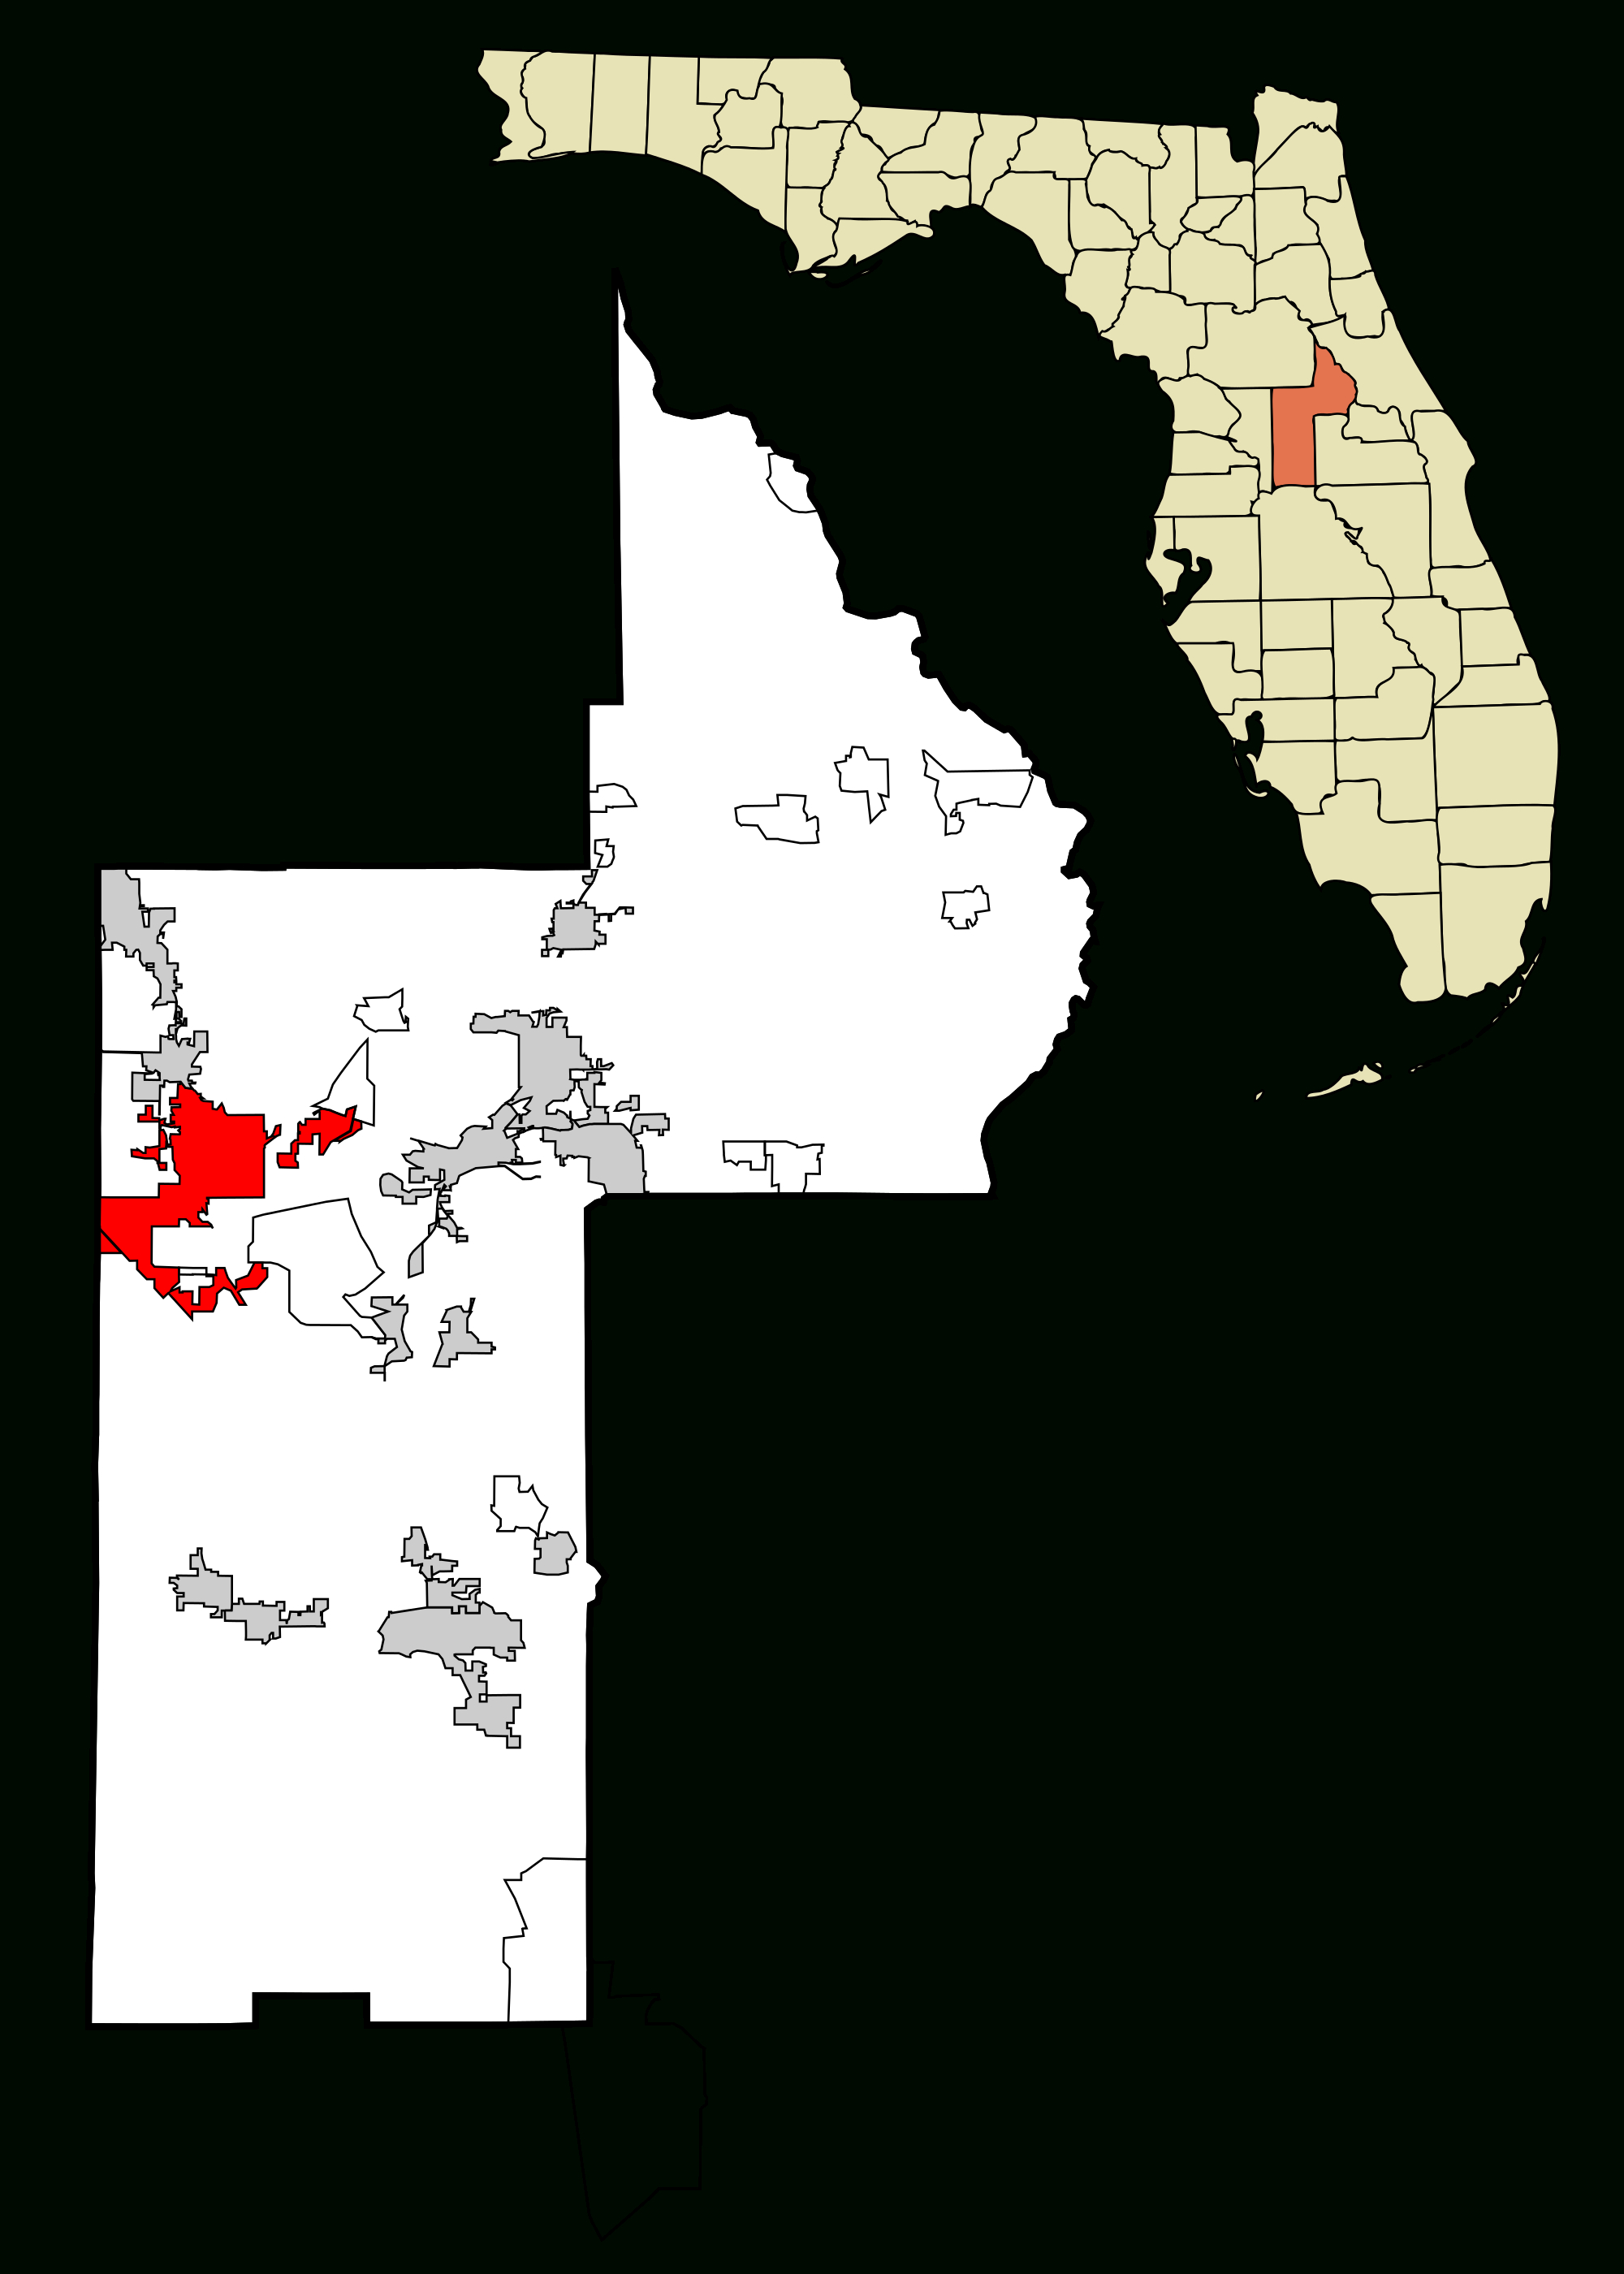 File:lake County Florida Incorporated And Unincorporated Areas - Leesburg Florida Map